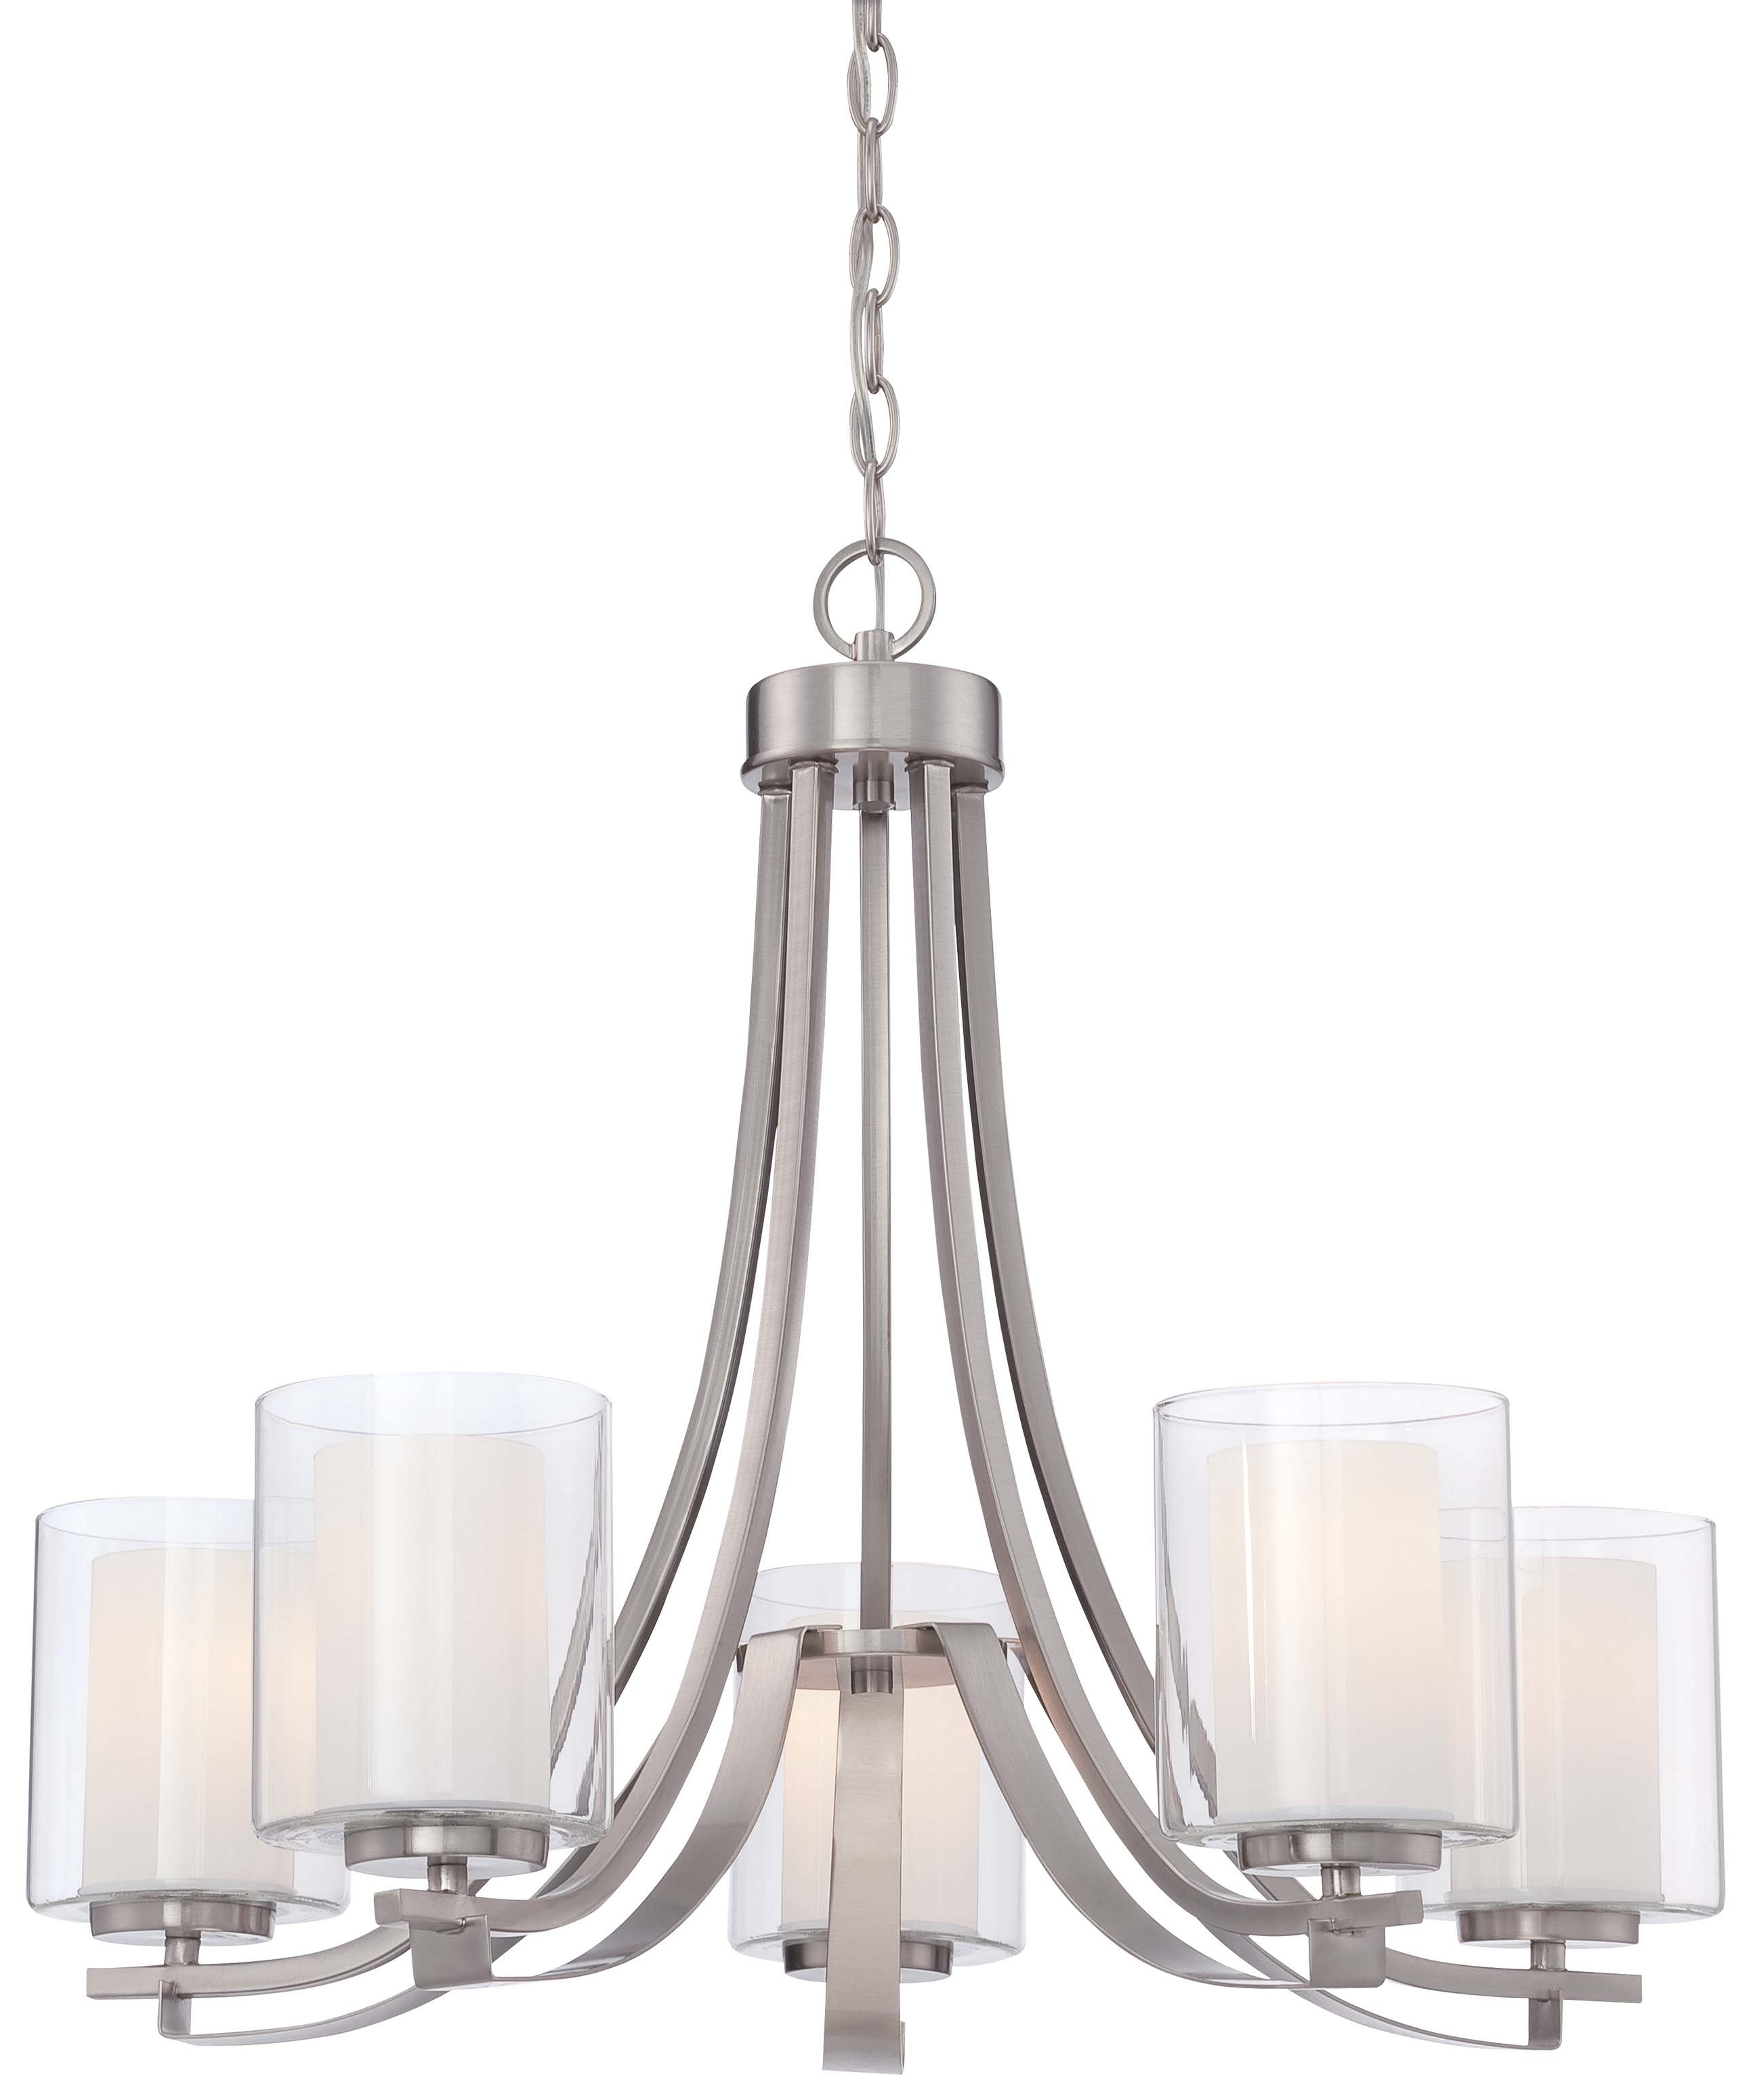 2019 Crofoot 5 Light Shaded Chandeliers Intended For Demby 5 Light Shaded Chandelier (View 1 of 20)